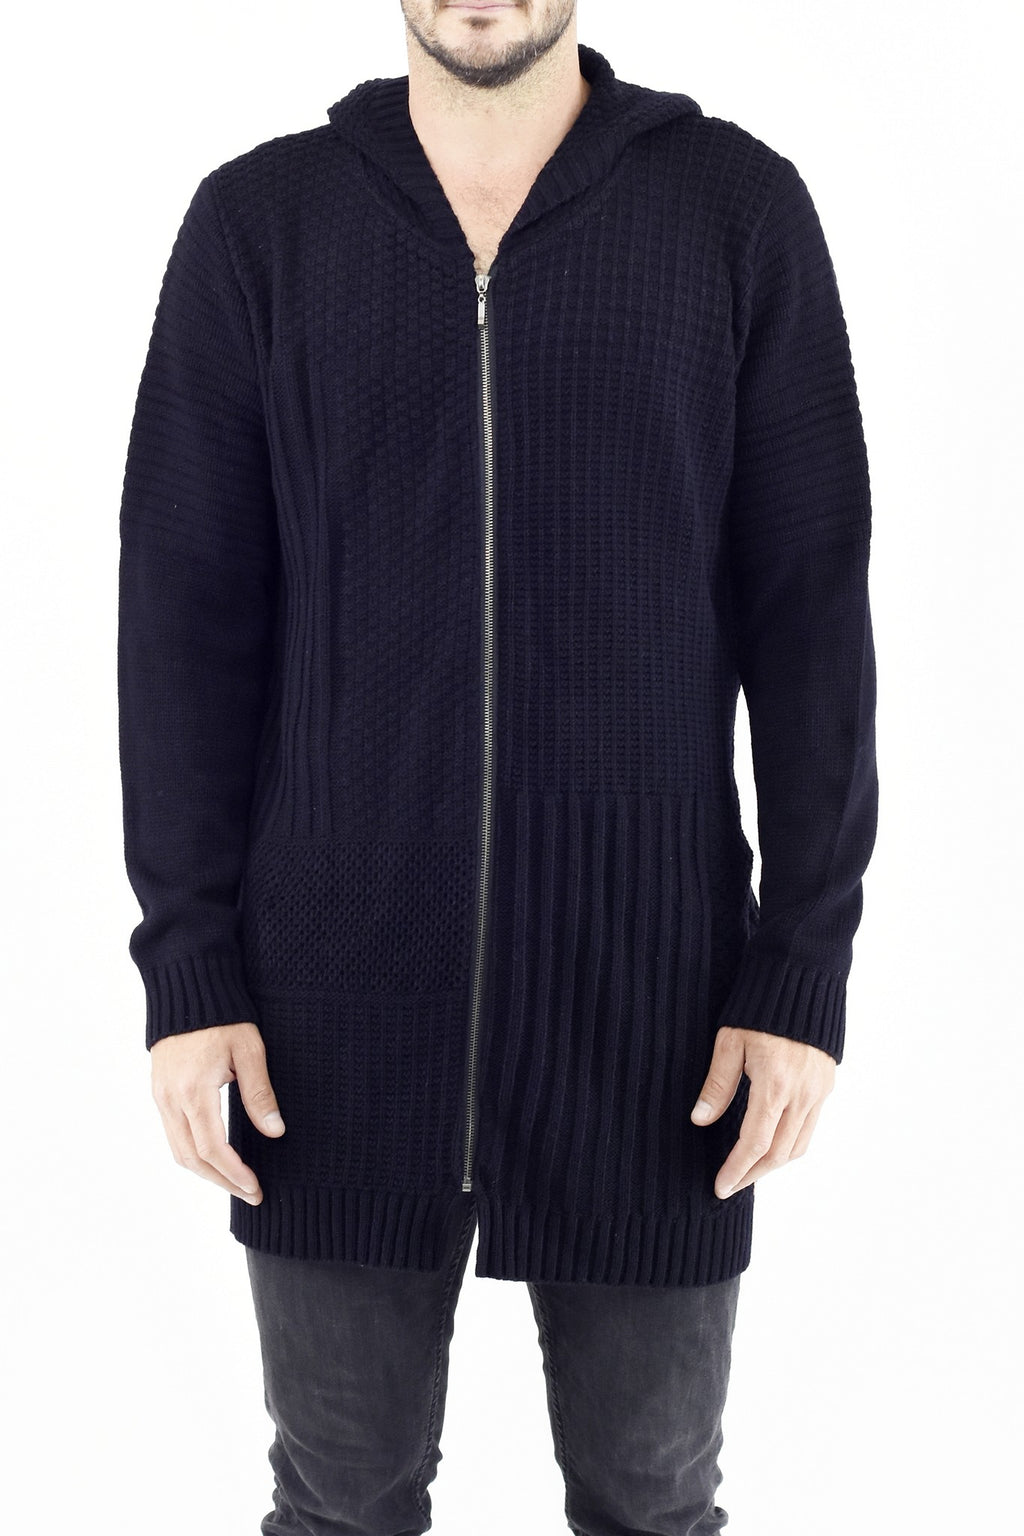 Mens Zip Patchwork Cardi in Black Cotton ZG5239